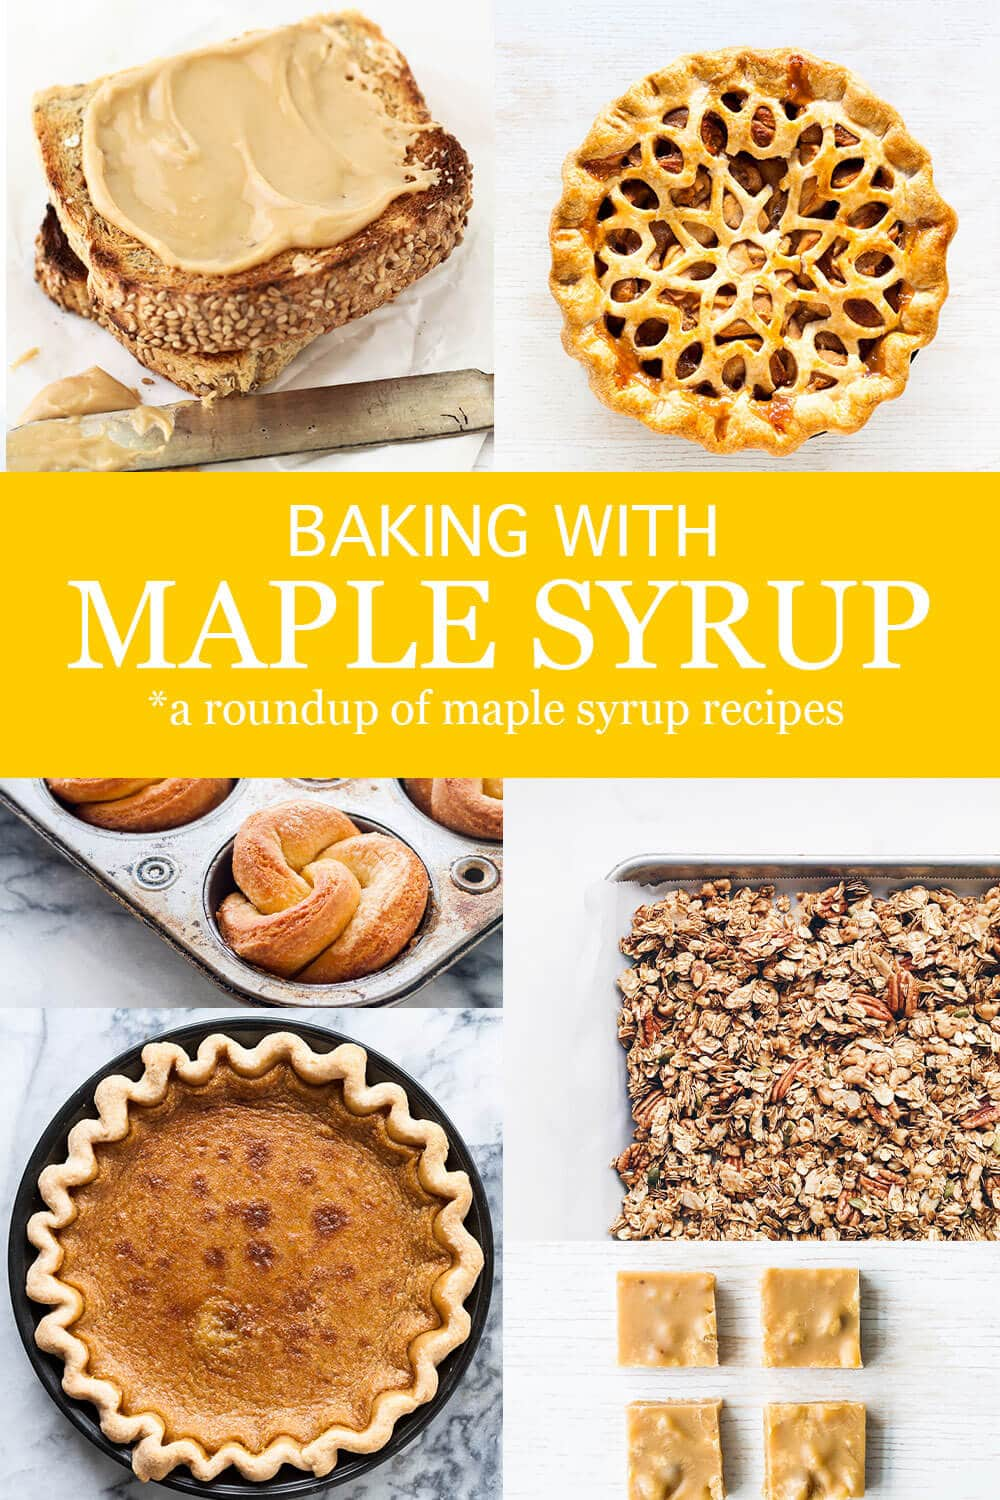 A collage of maple syrup recipes including maple butter, maple apple pie, maple brioche buns, maple granola, maple pie, and maple fudge